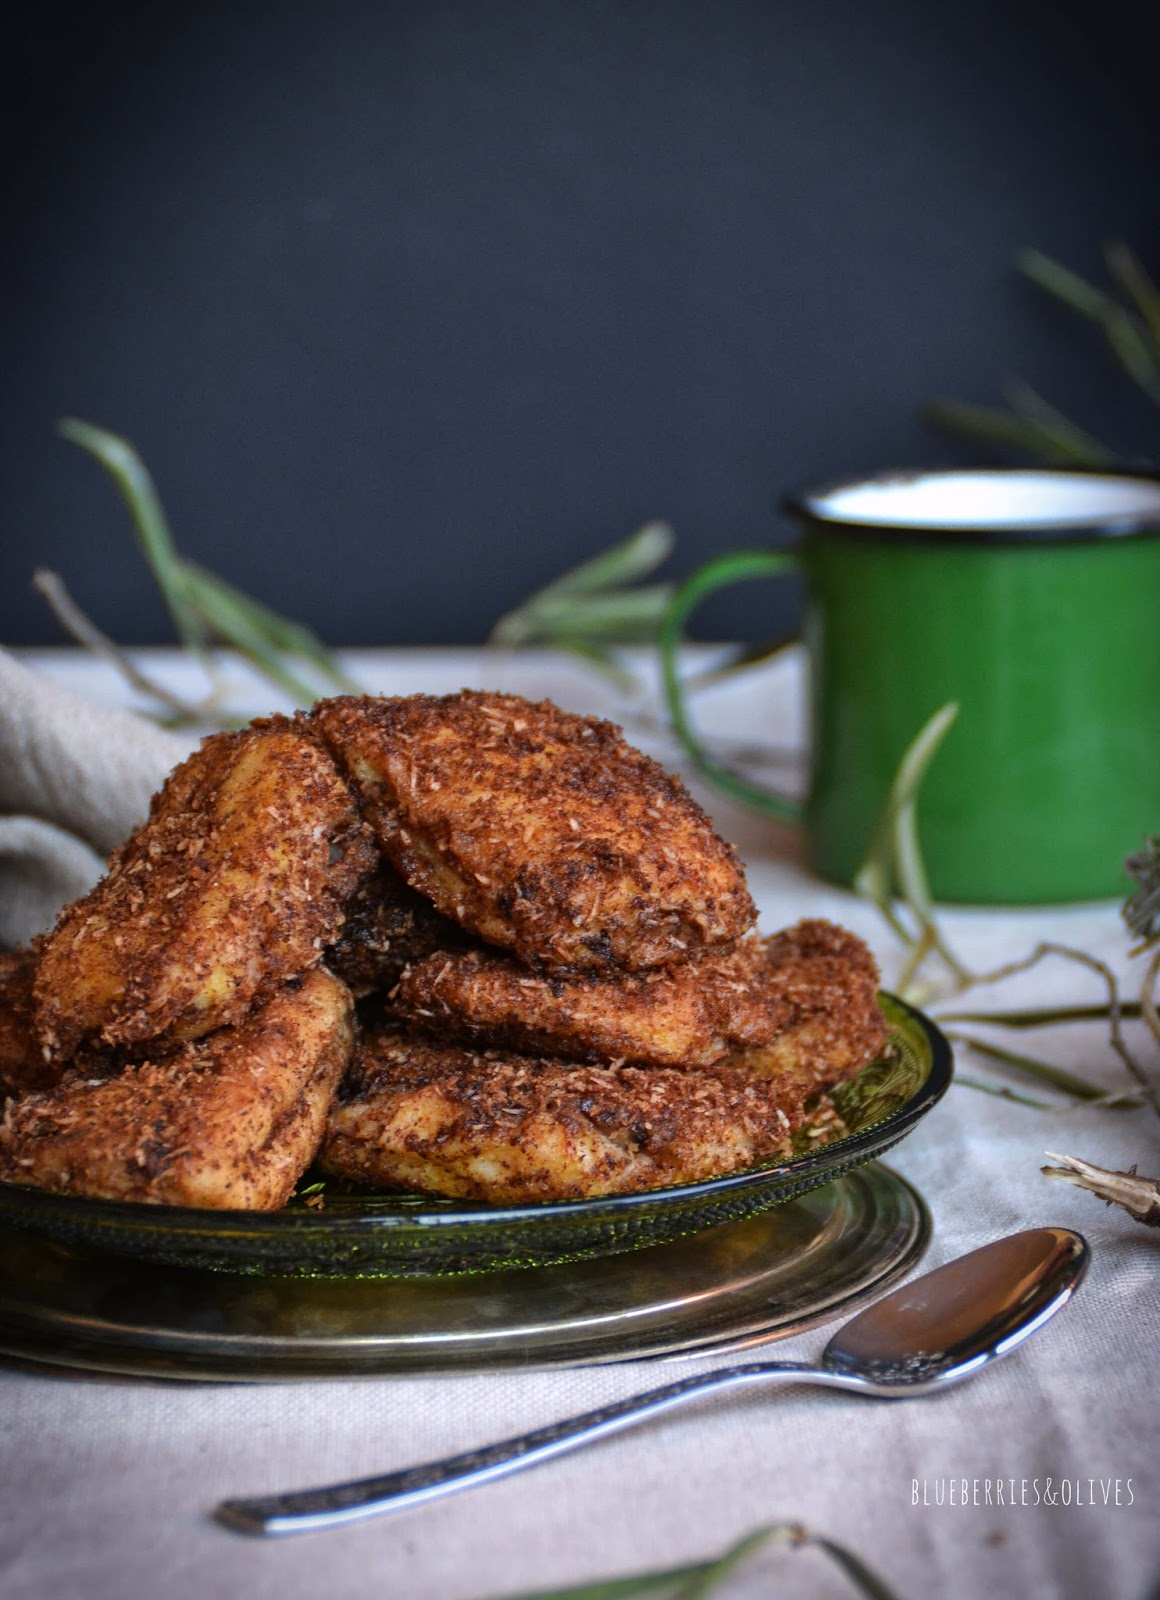 FRIED SPICED COCONUT MILK